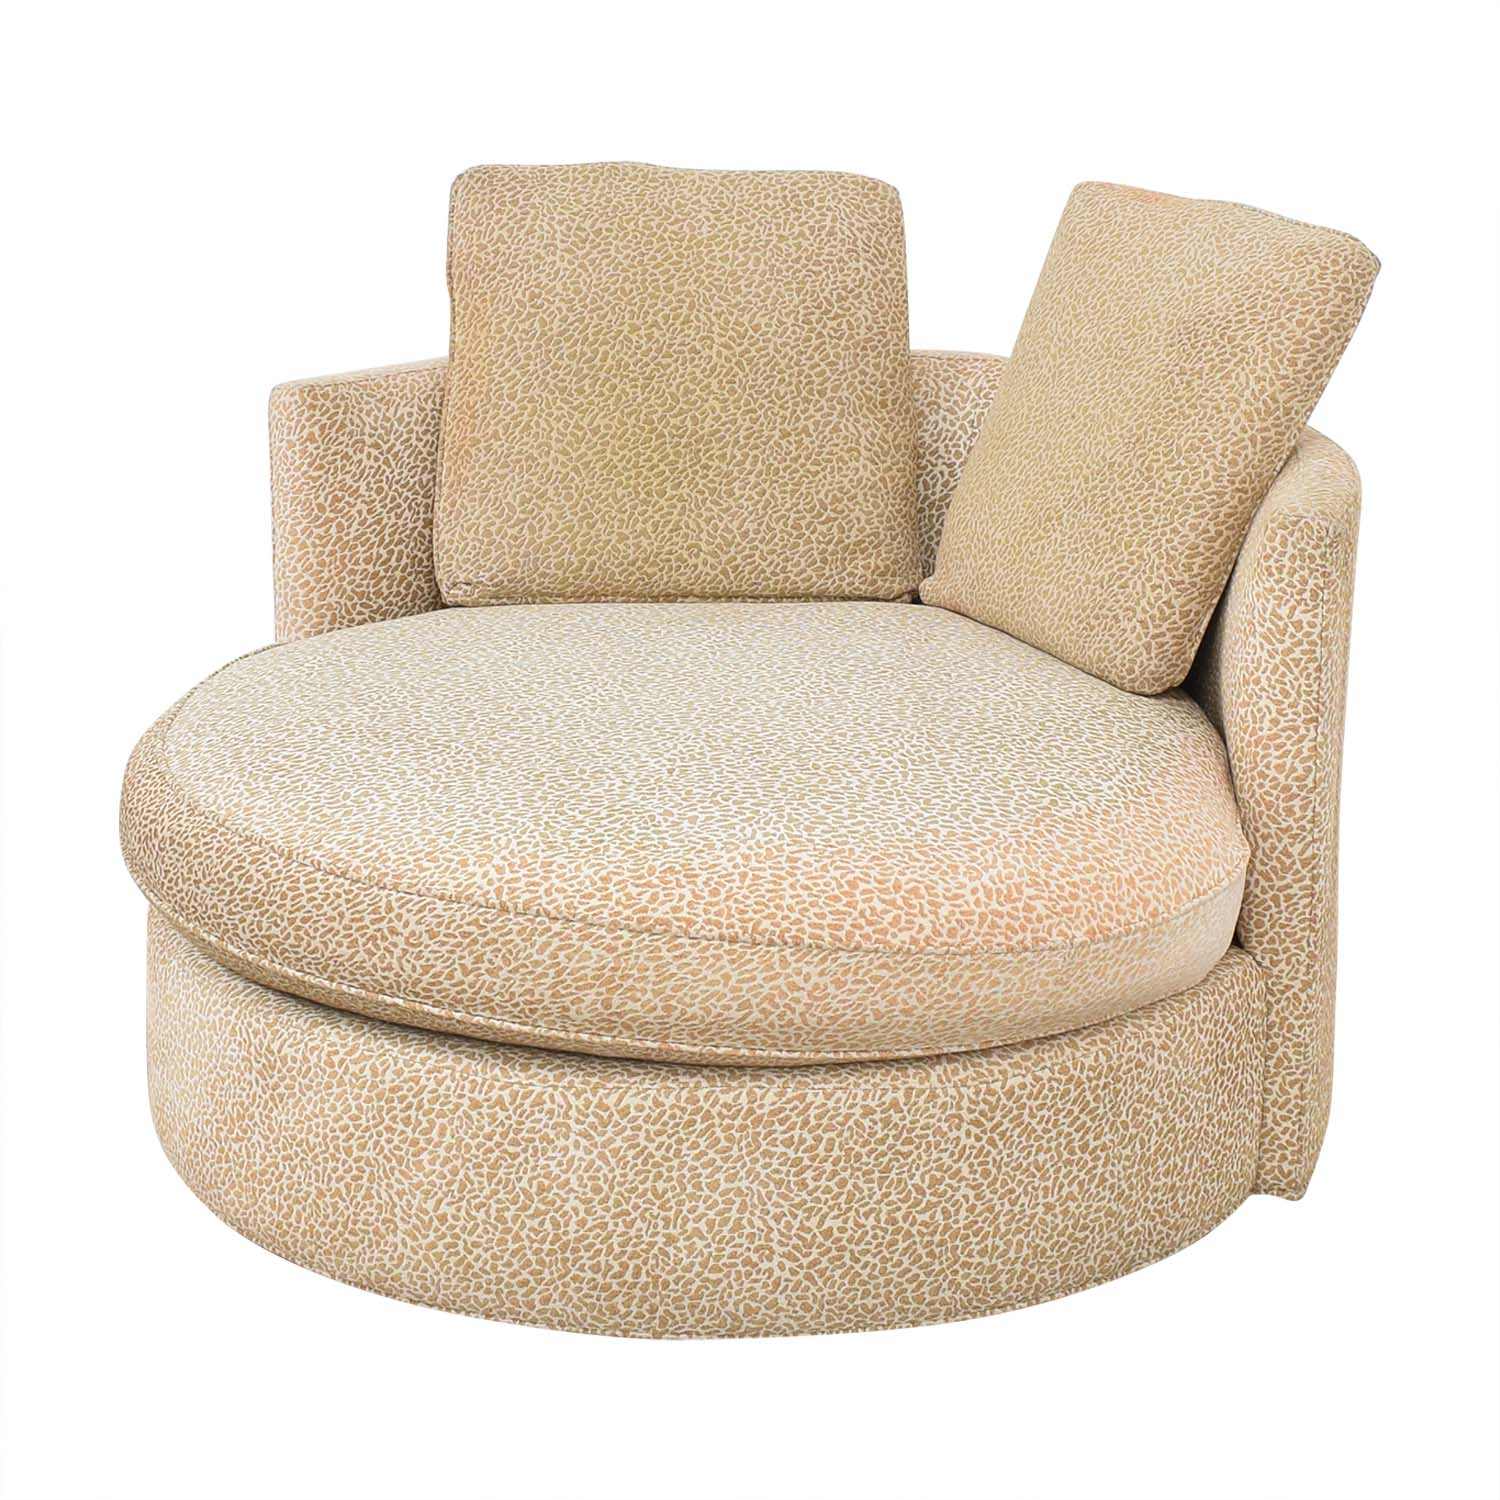 Macy's Macy's Circle Swivel Chair nj